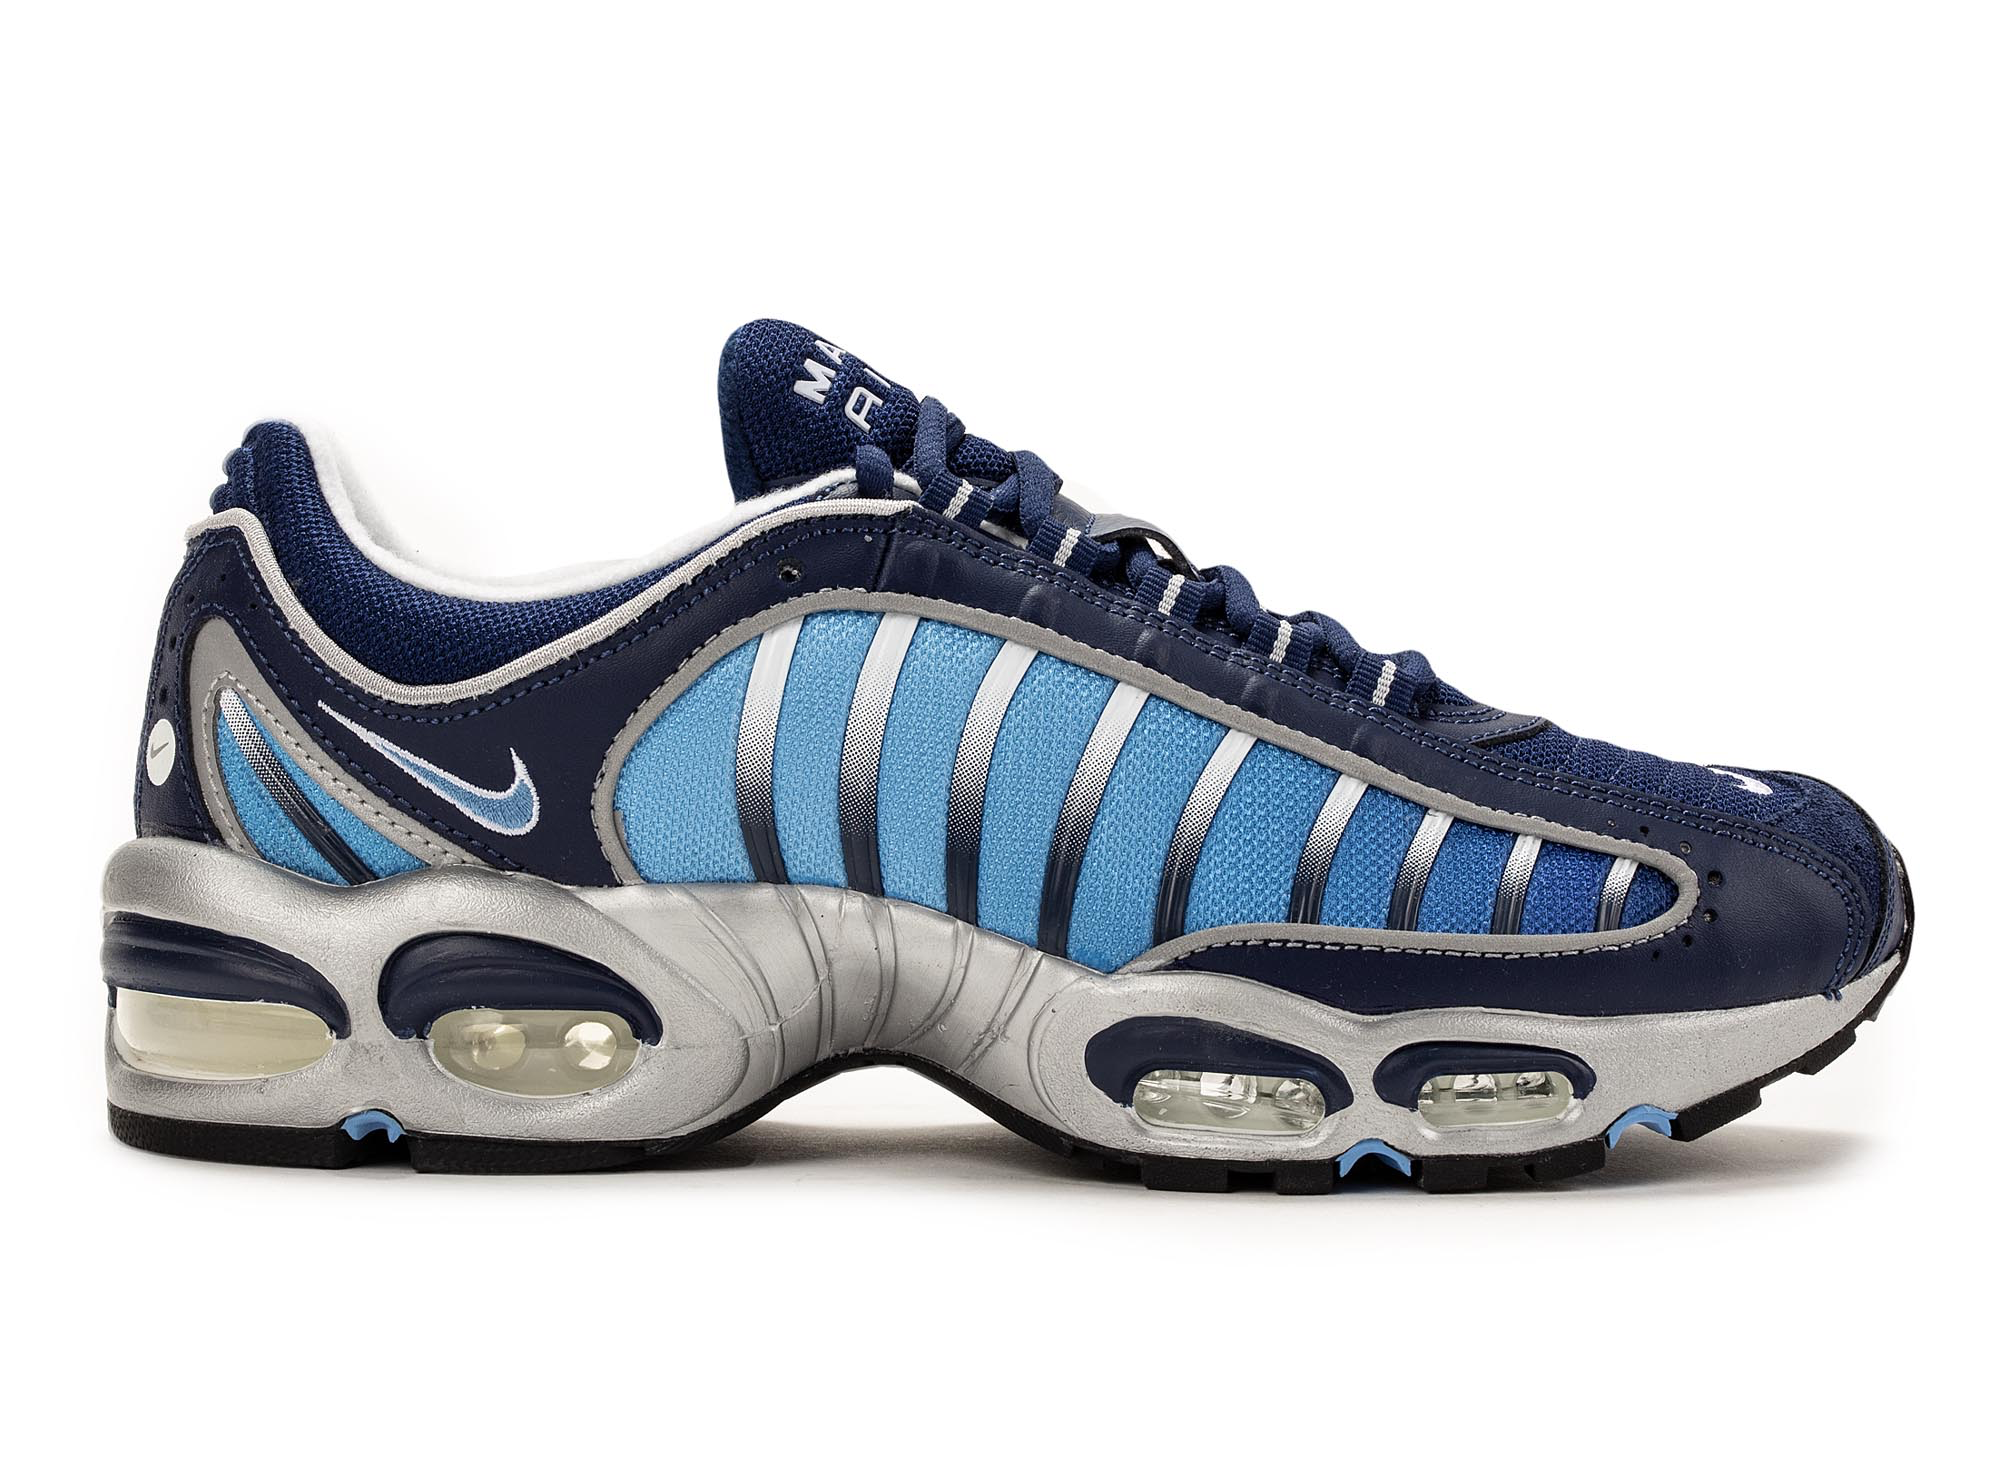 Nike Air Max Tailwind IV 'Blue Void'